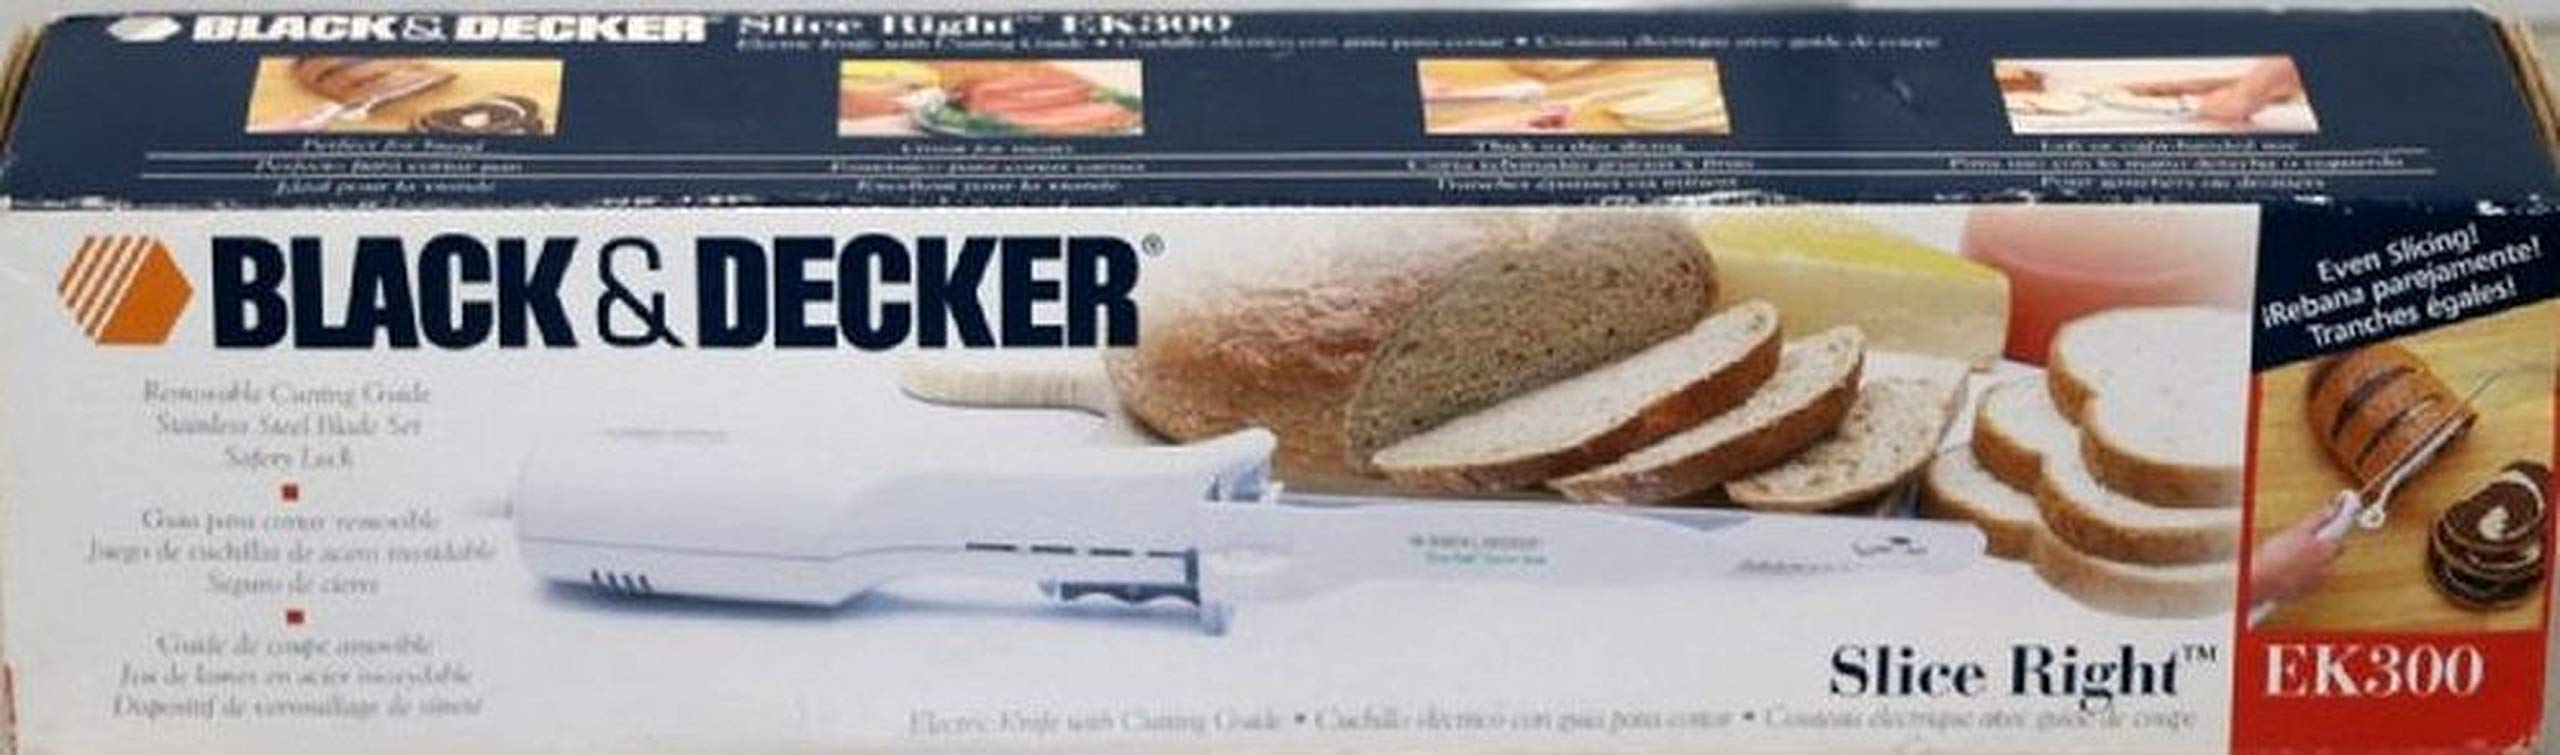 Black & Decker Electric Knife EK300 Slice Right With Box